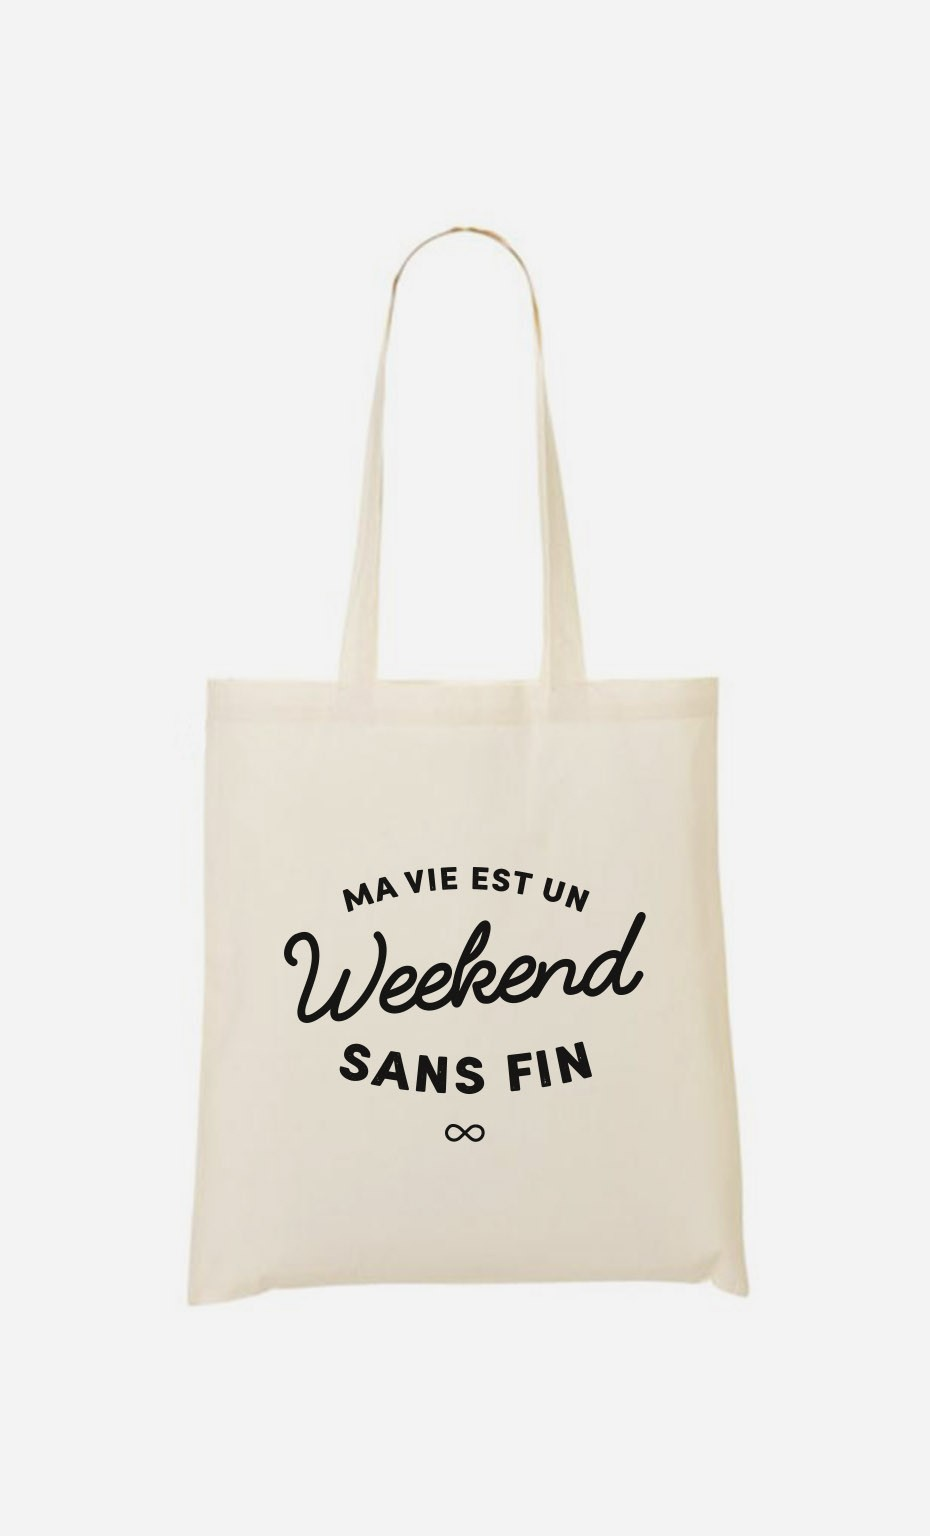 Tote Bag Un Weekend Sans Fin